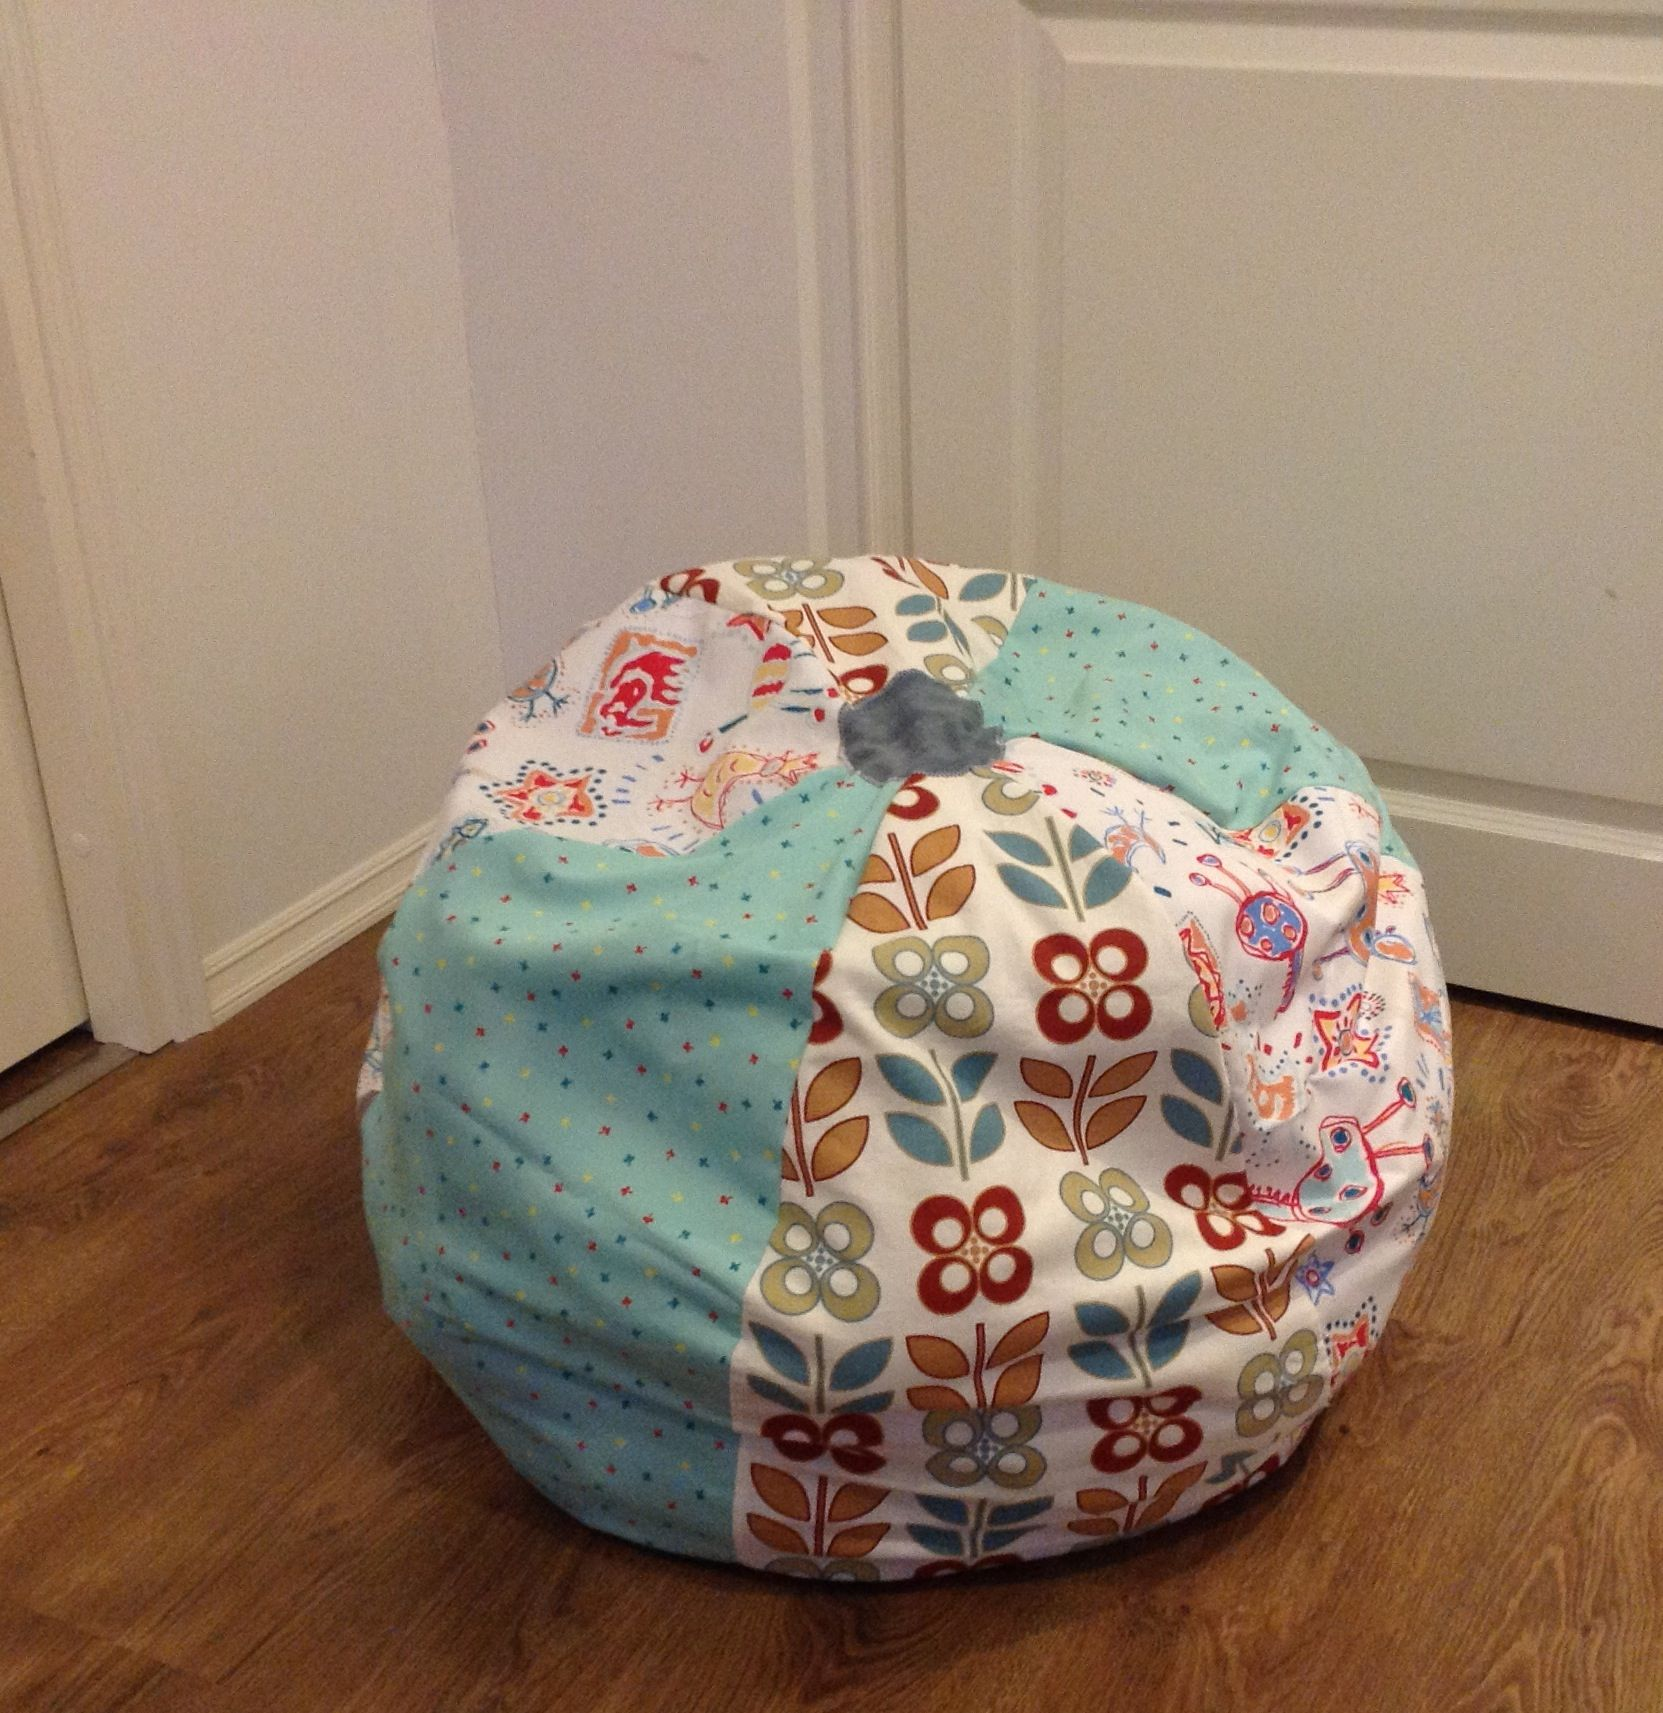 DIY Stuffed Animal Storage With A Zipper Eg Bean Bag Chair By LeenaH